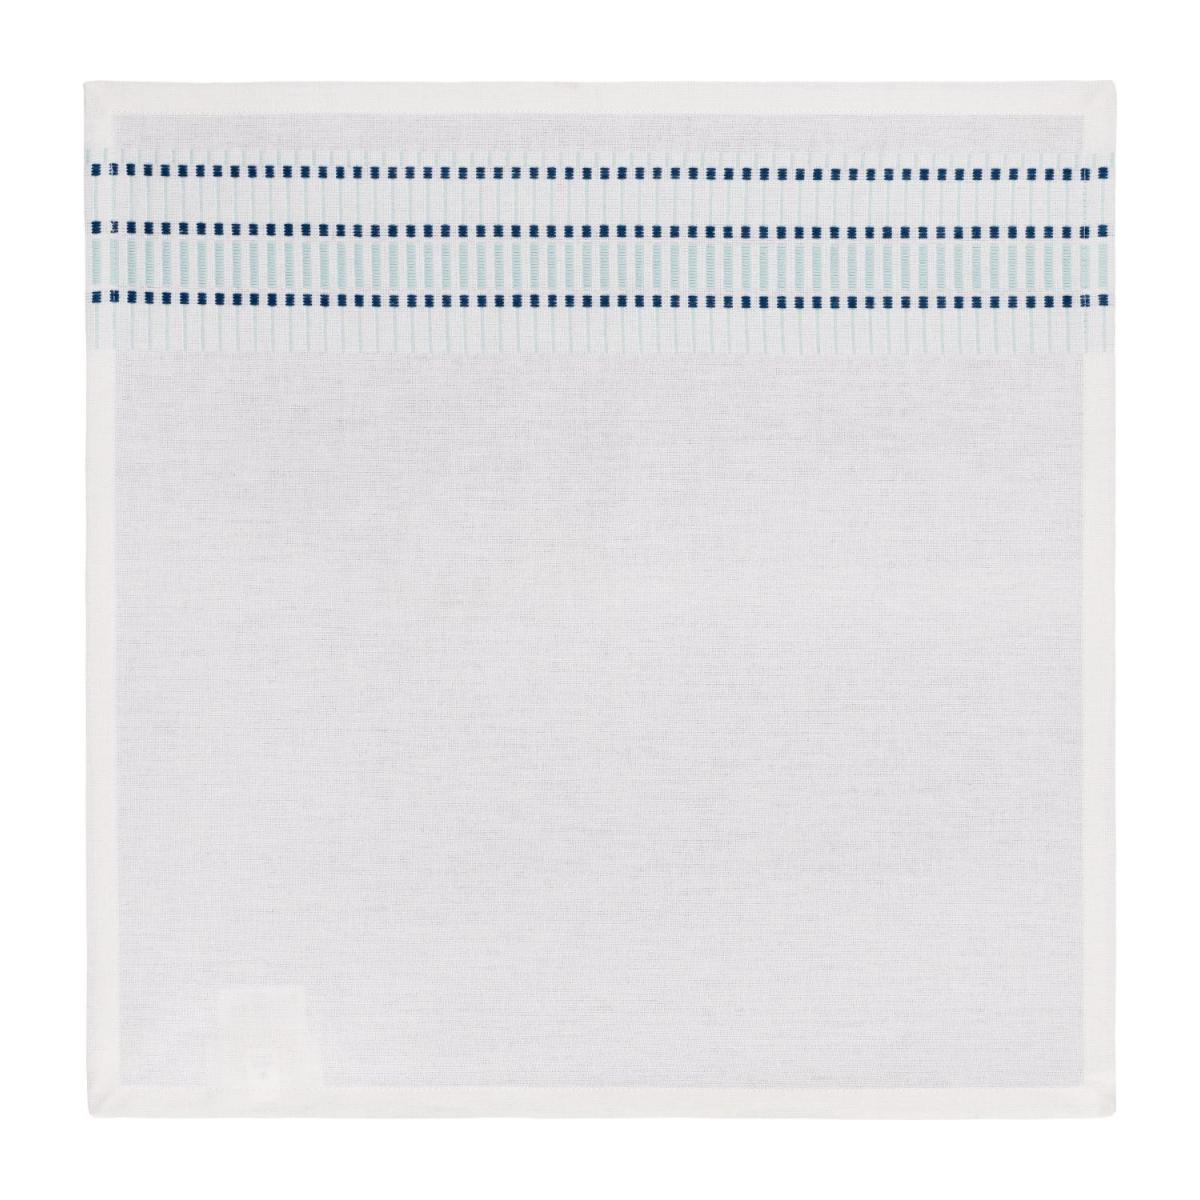 Set of 4 Celadon Patterned Napkins  n°1